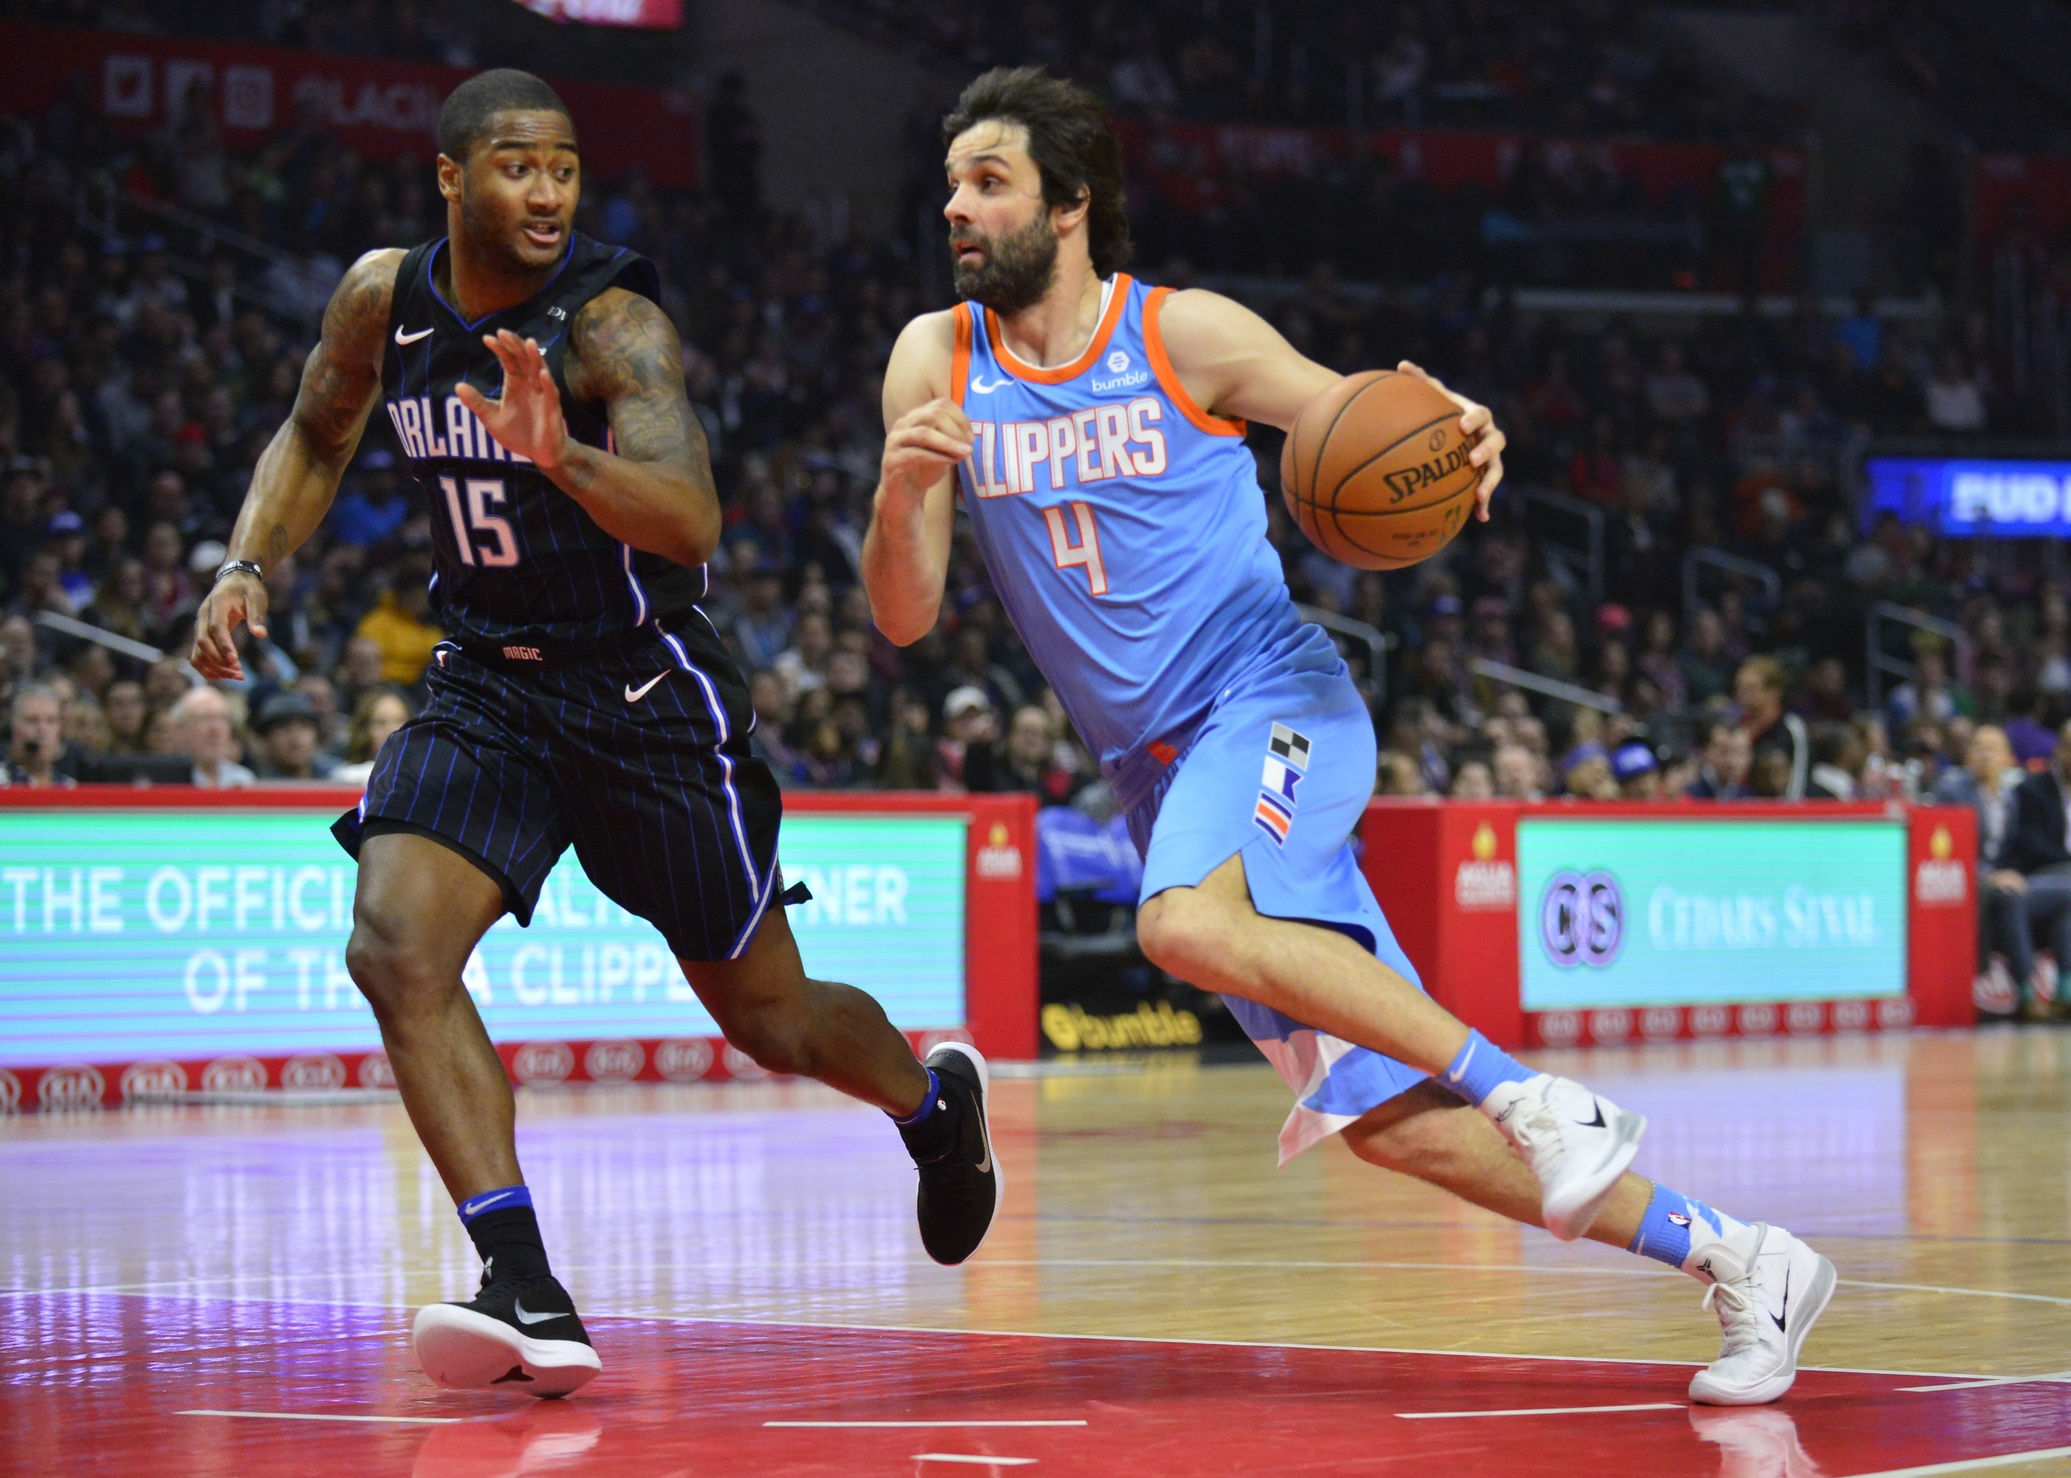 Milos Teodosic wishes he came into the NBA at a younger age